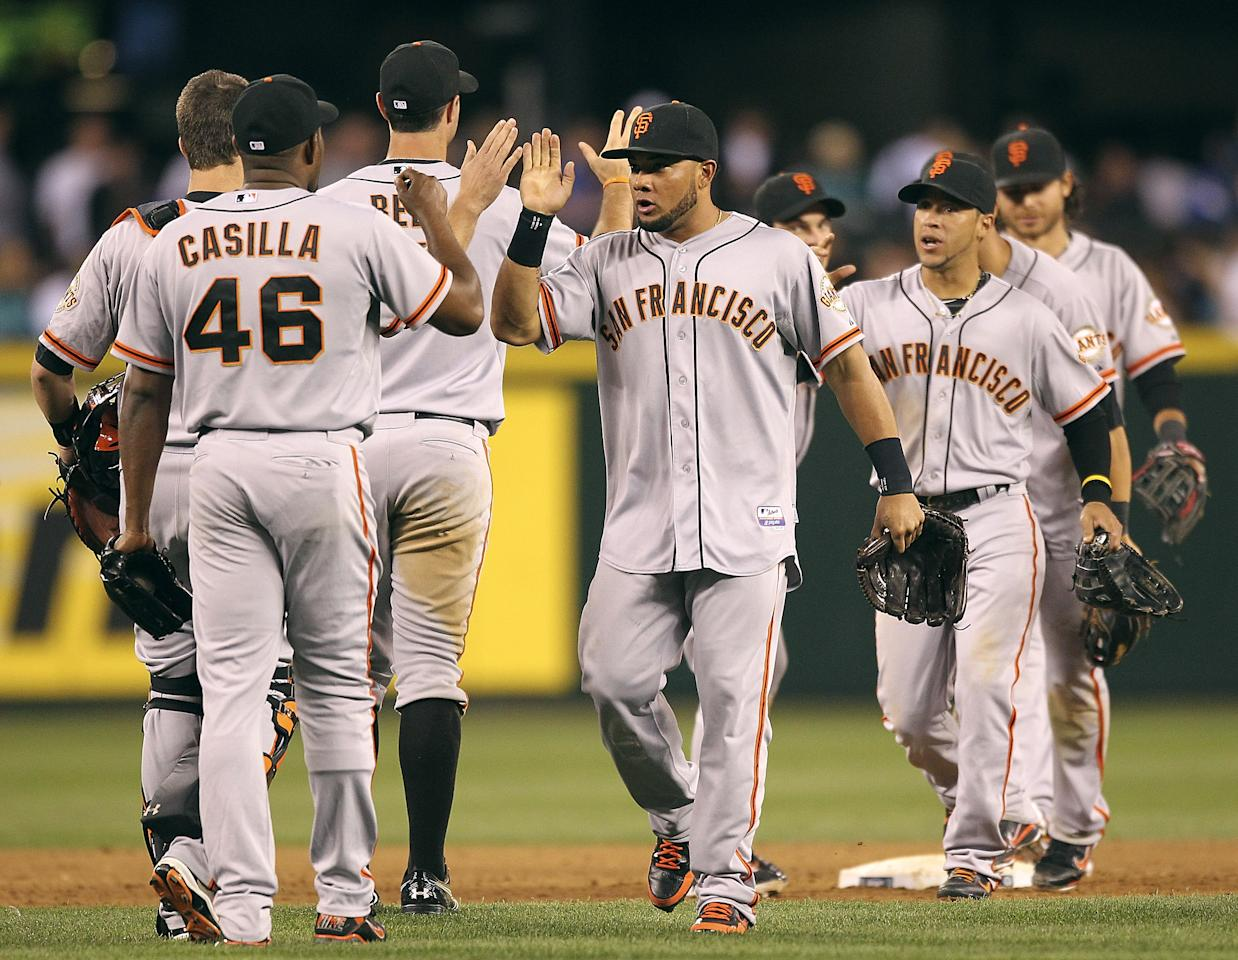 SEATTLE, WA - JUNE 15:  Members of the San Francisco Giants celebrate after defeating the Seattle Mariners 4-2 at Safeco Field on June 15, 2012 in Seattle, Washington. (Photo by Otto Greule Jr/Getty Images)